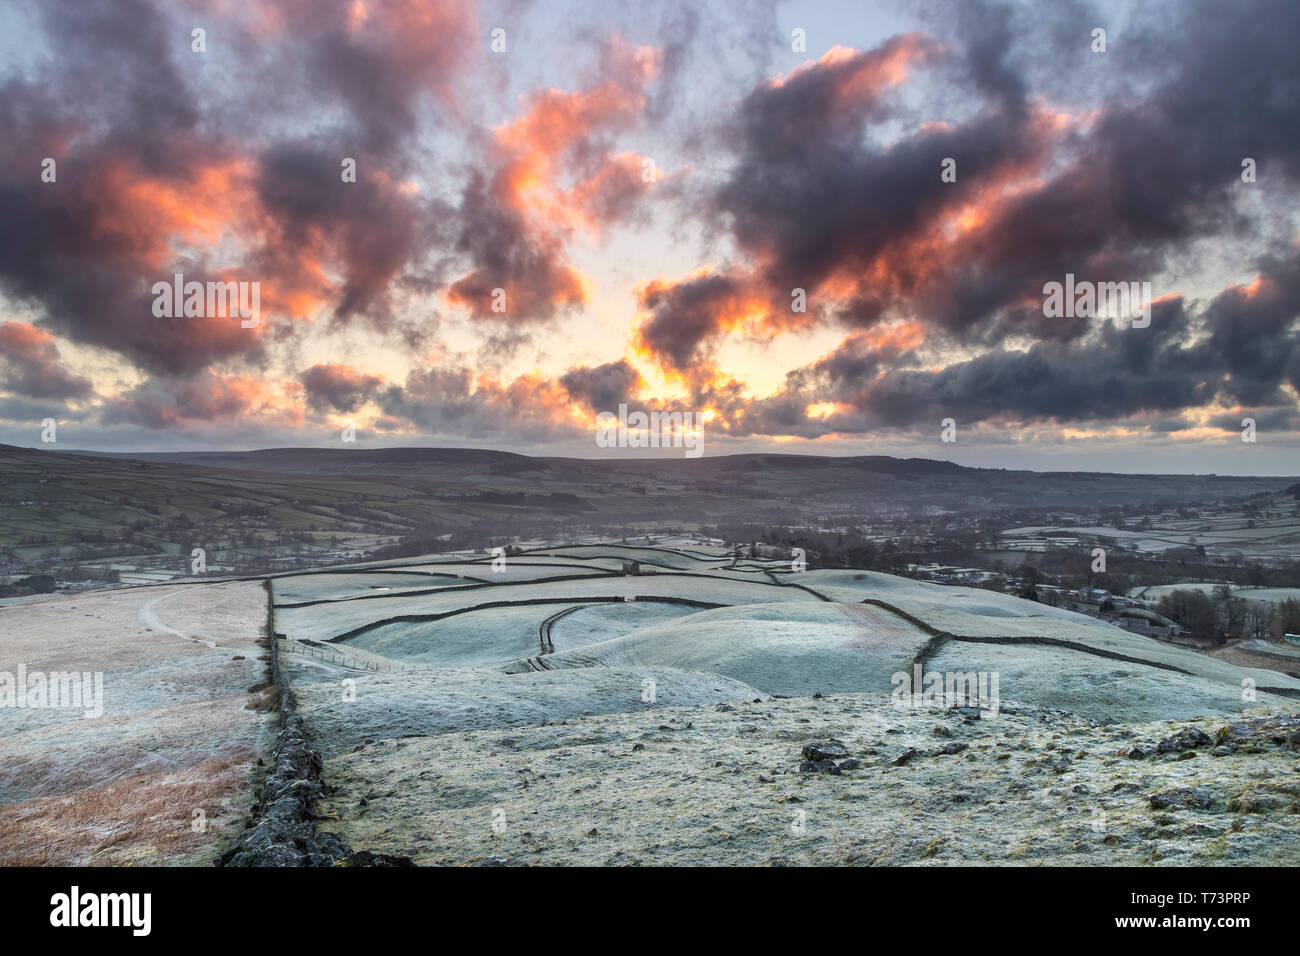 A Frosty Sunrise Viewed from the Ancient Tumulus of Kirkcarrion, Lunedale, Teesdale, County Durham, UK Stock Photo